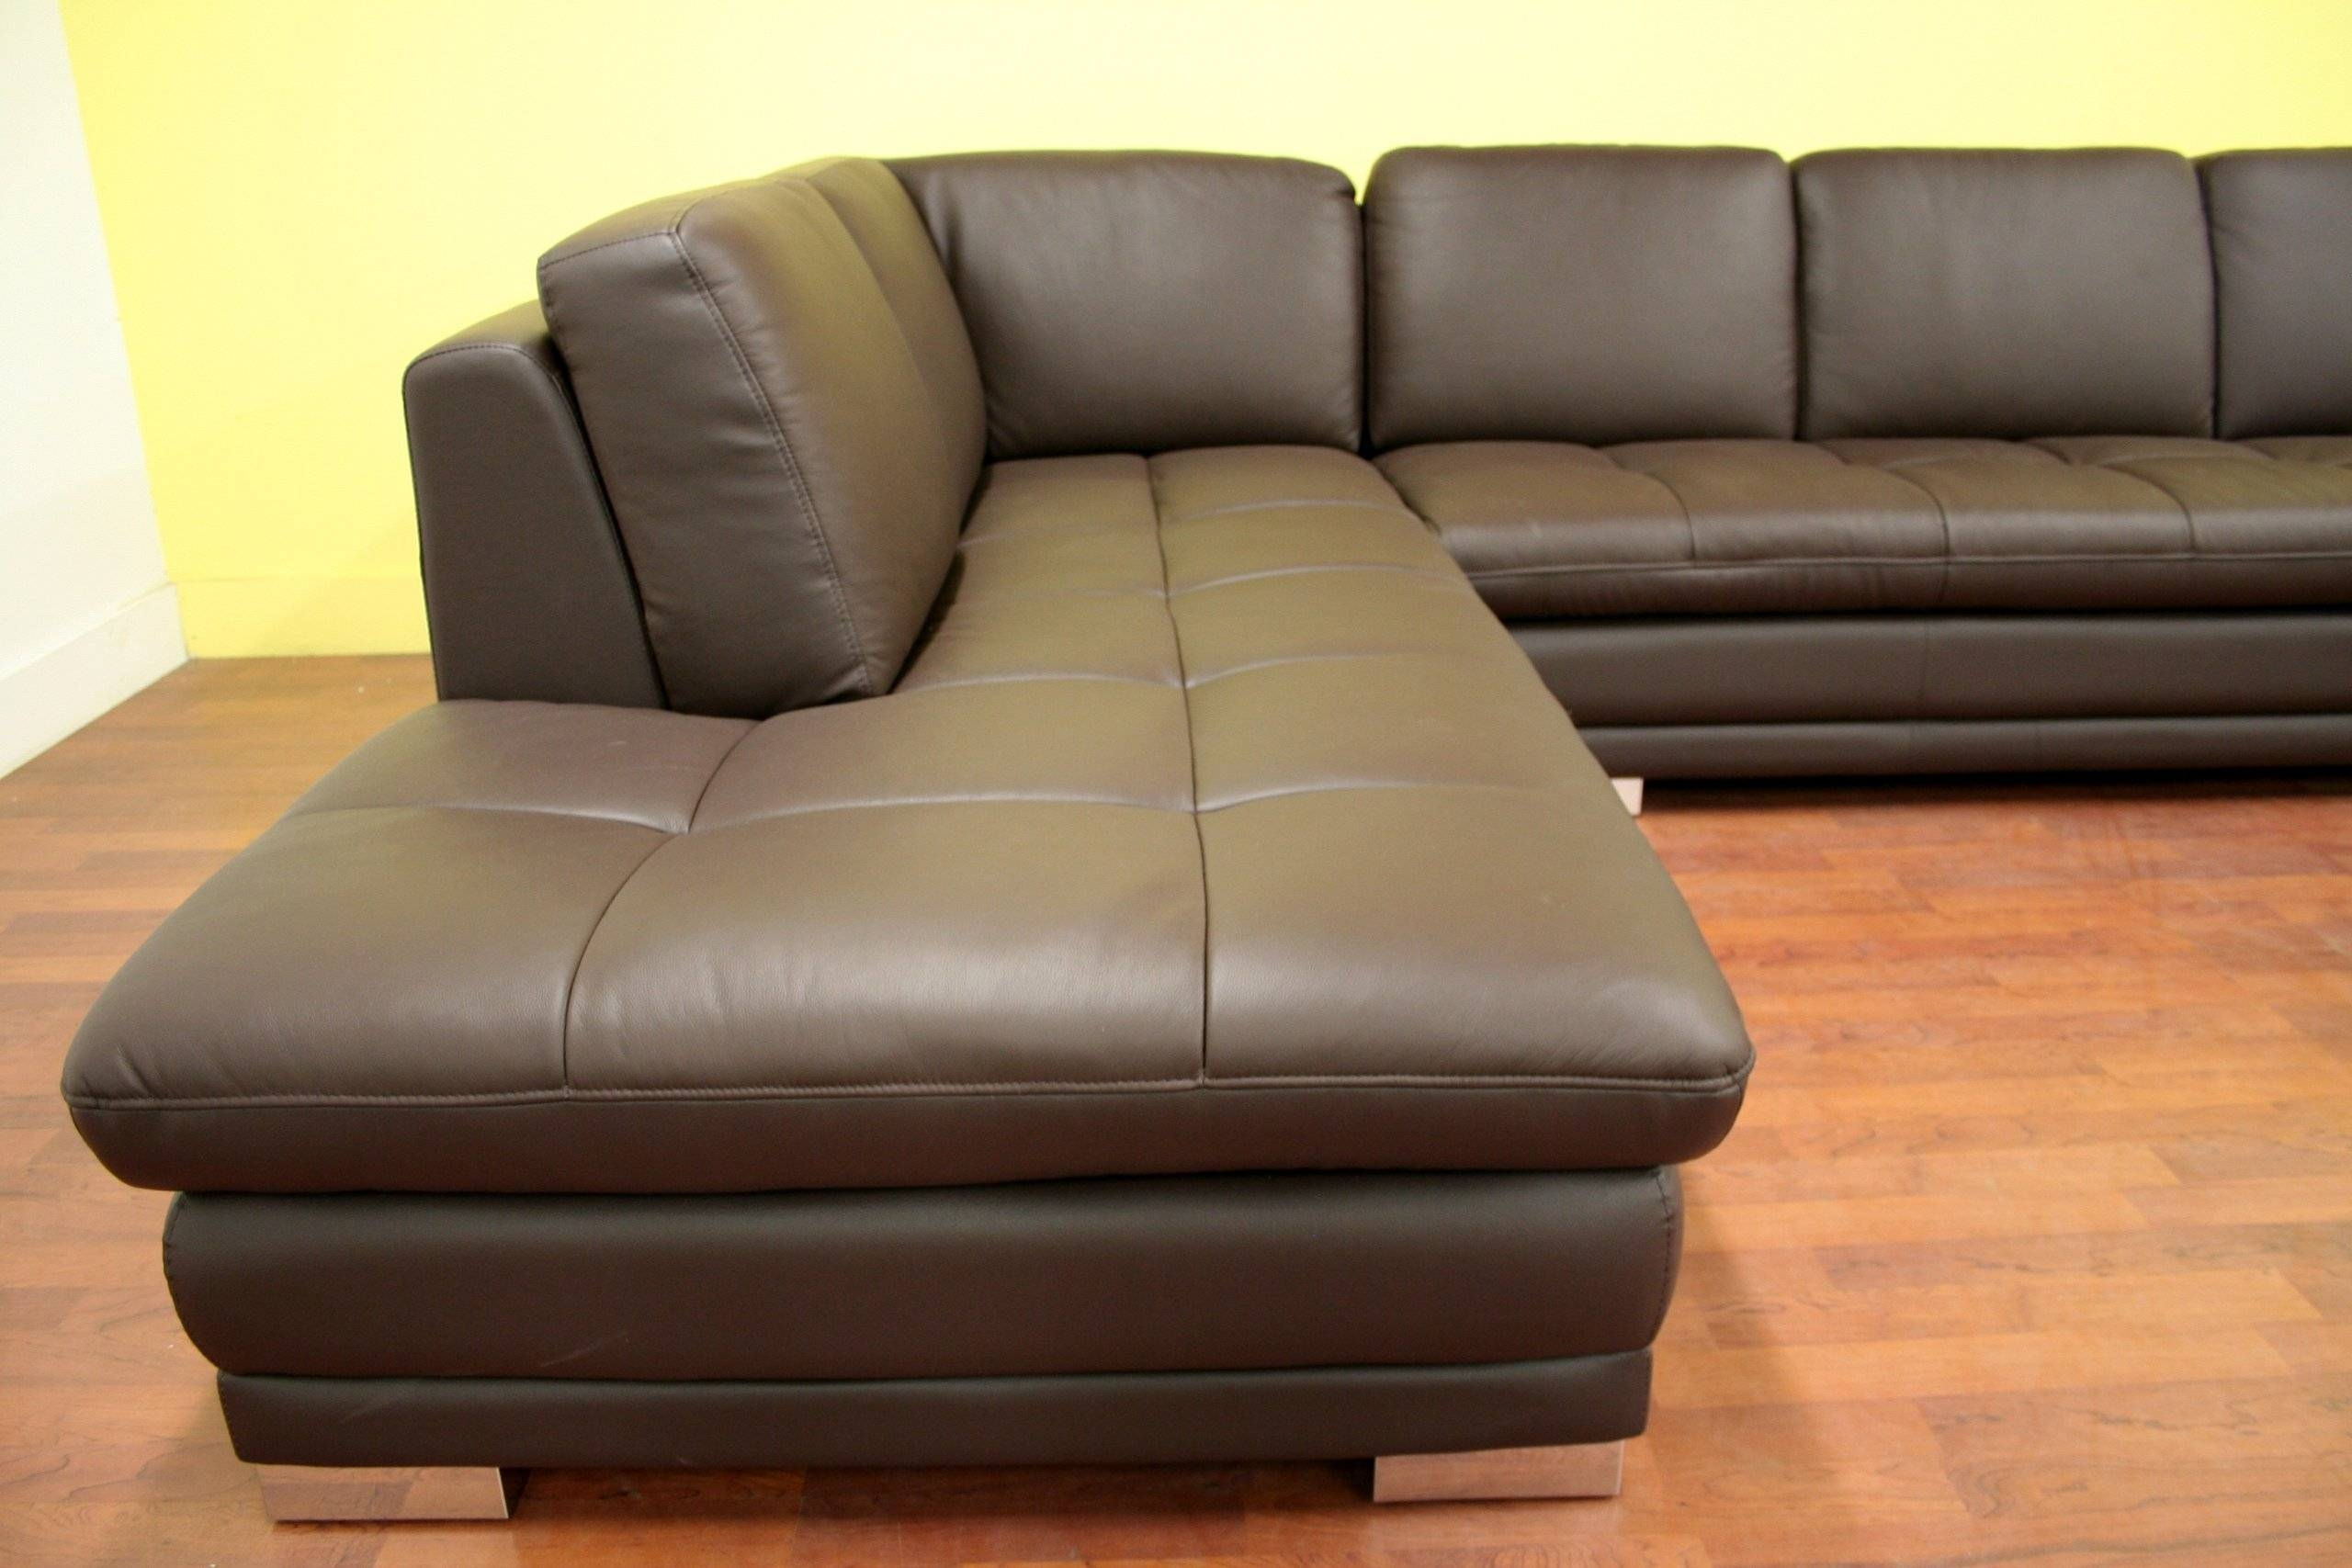 Furniture: Baxton Studio Sectional | Braxton Sectional Sofa for Dobson Sectional Sofa (Image 7 of 30)